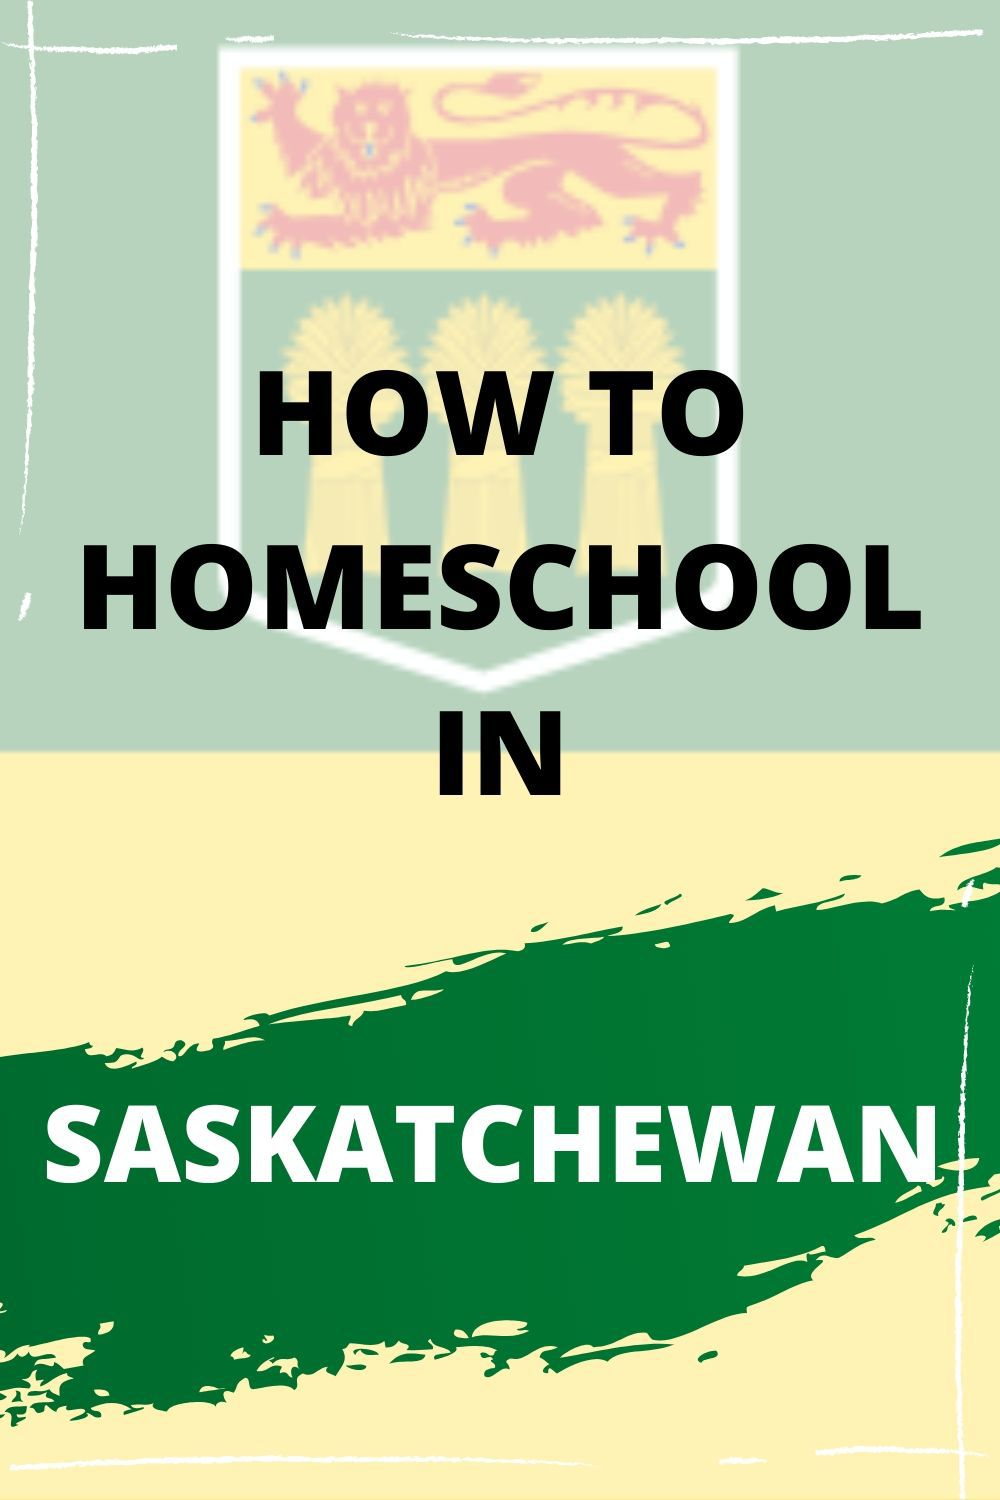 Homeschooling in Saskatchewan : A Guide to homeschooling regulations in Saskatchewan